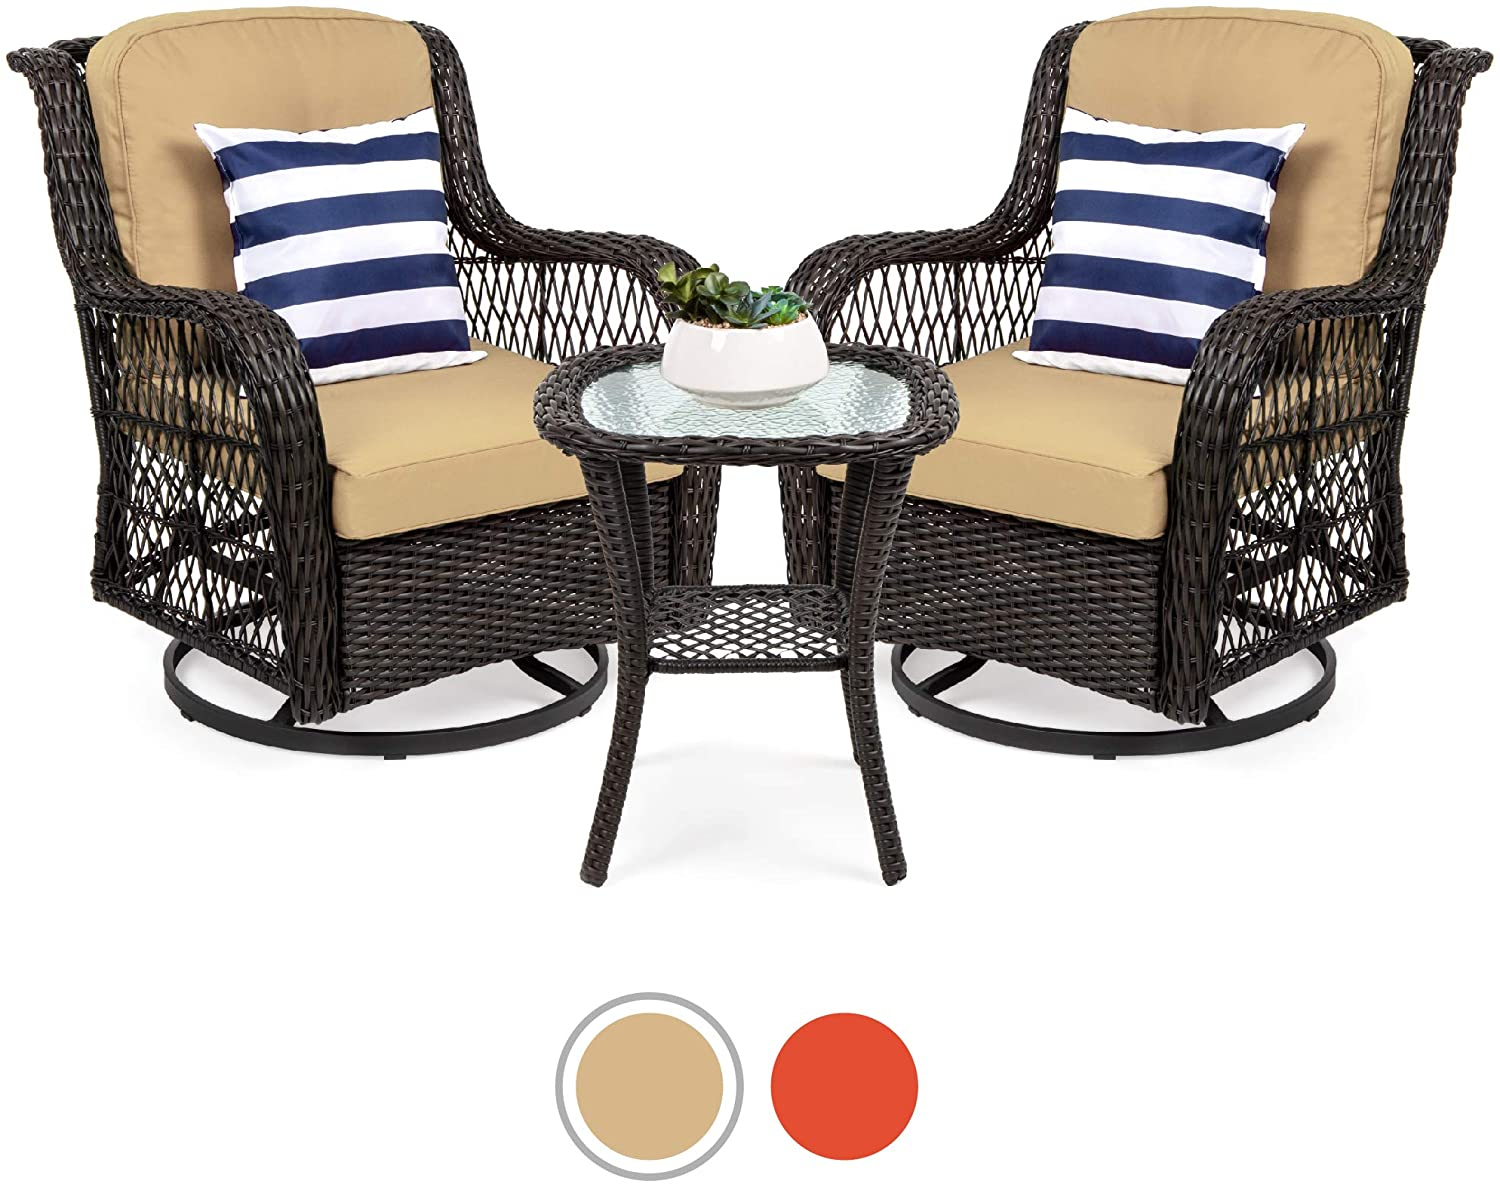 the best swivel patio chair may 2021